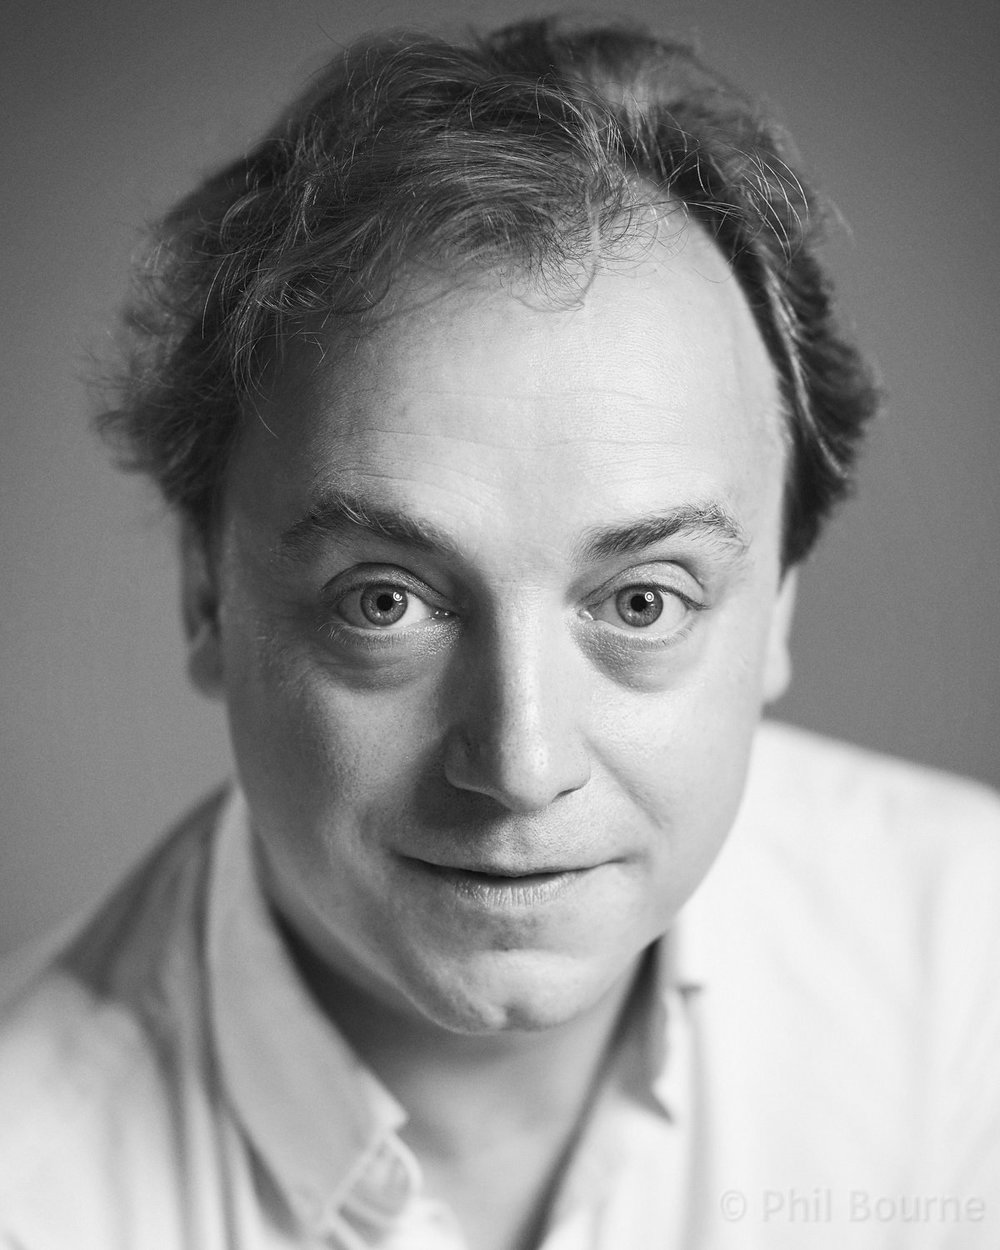 actor-headshots-london-by-phil-bourne_007.JPG